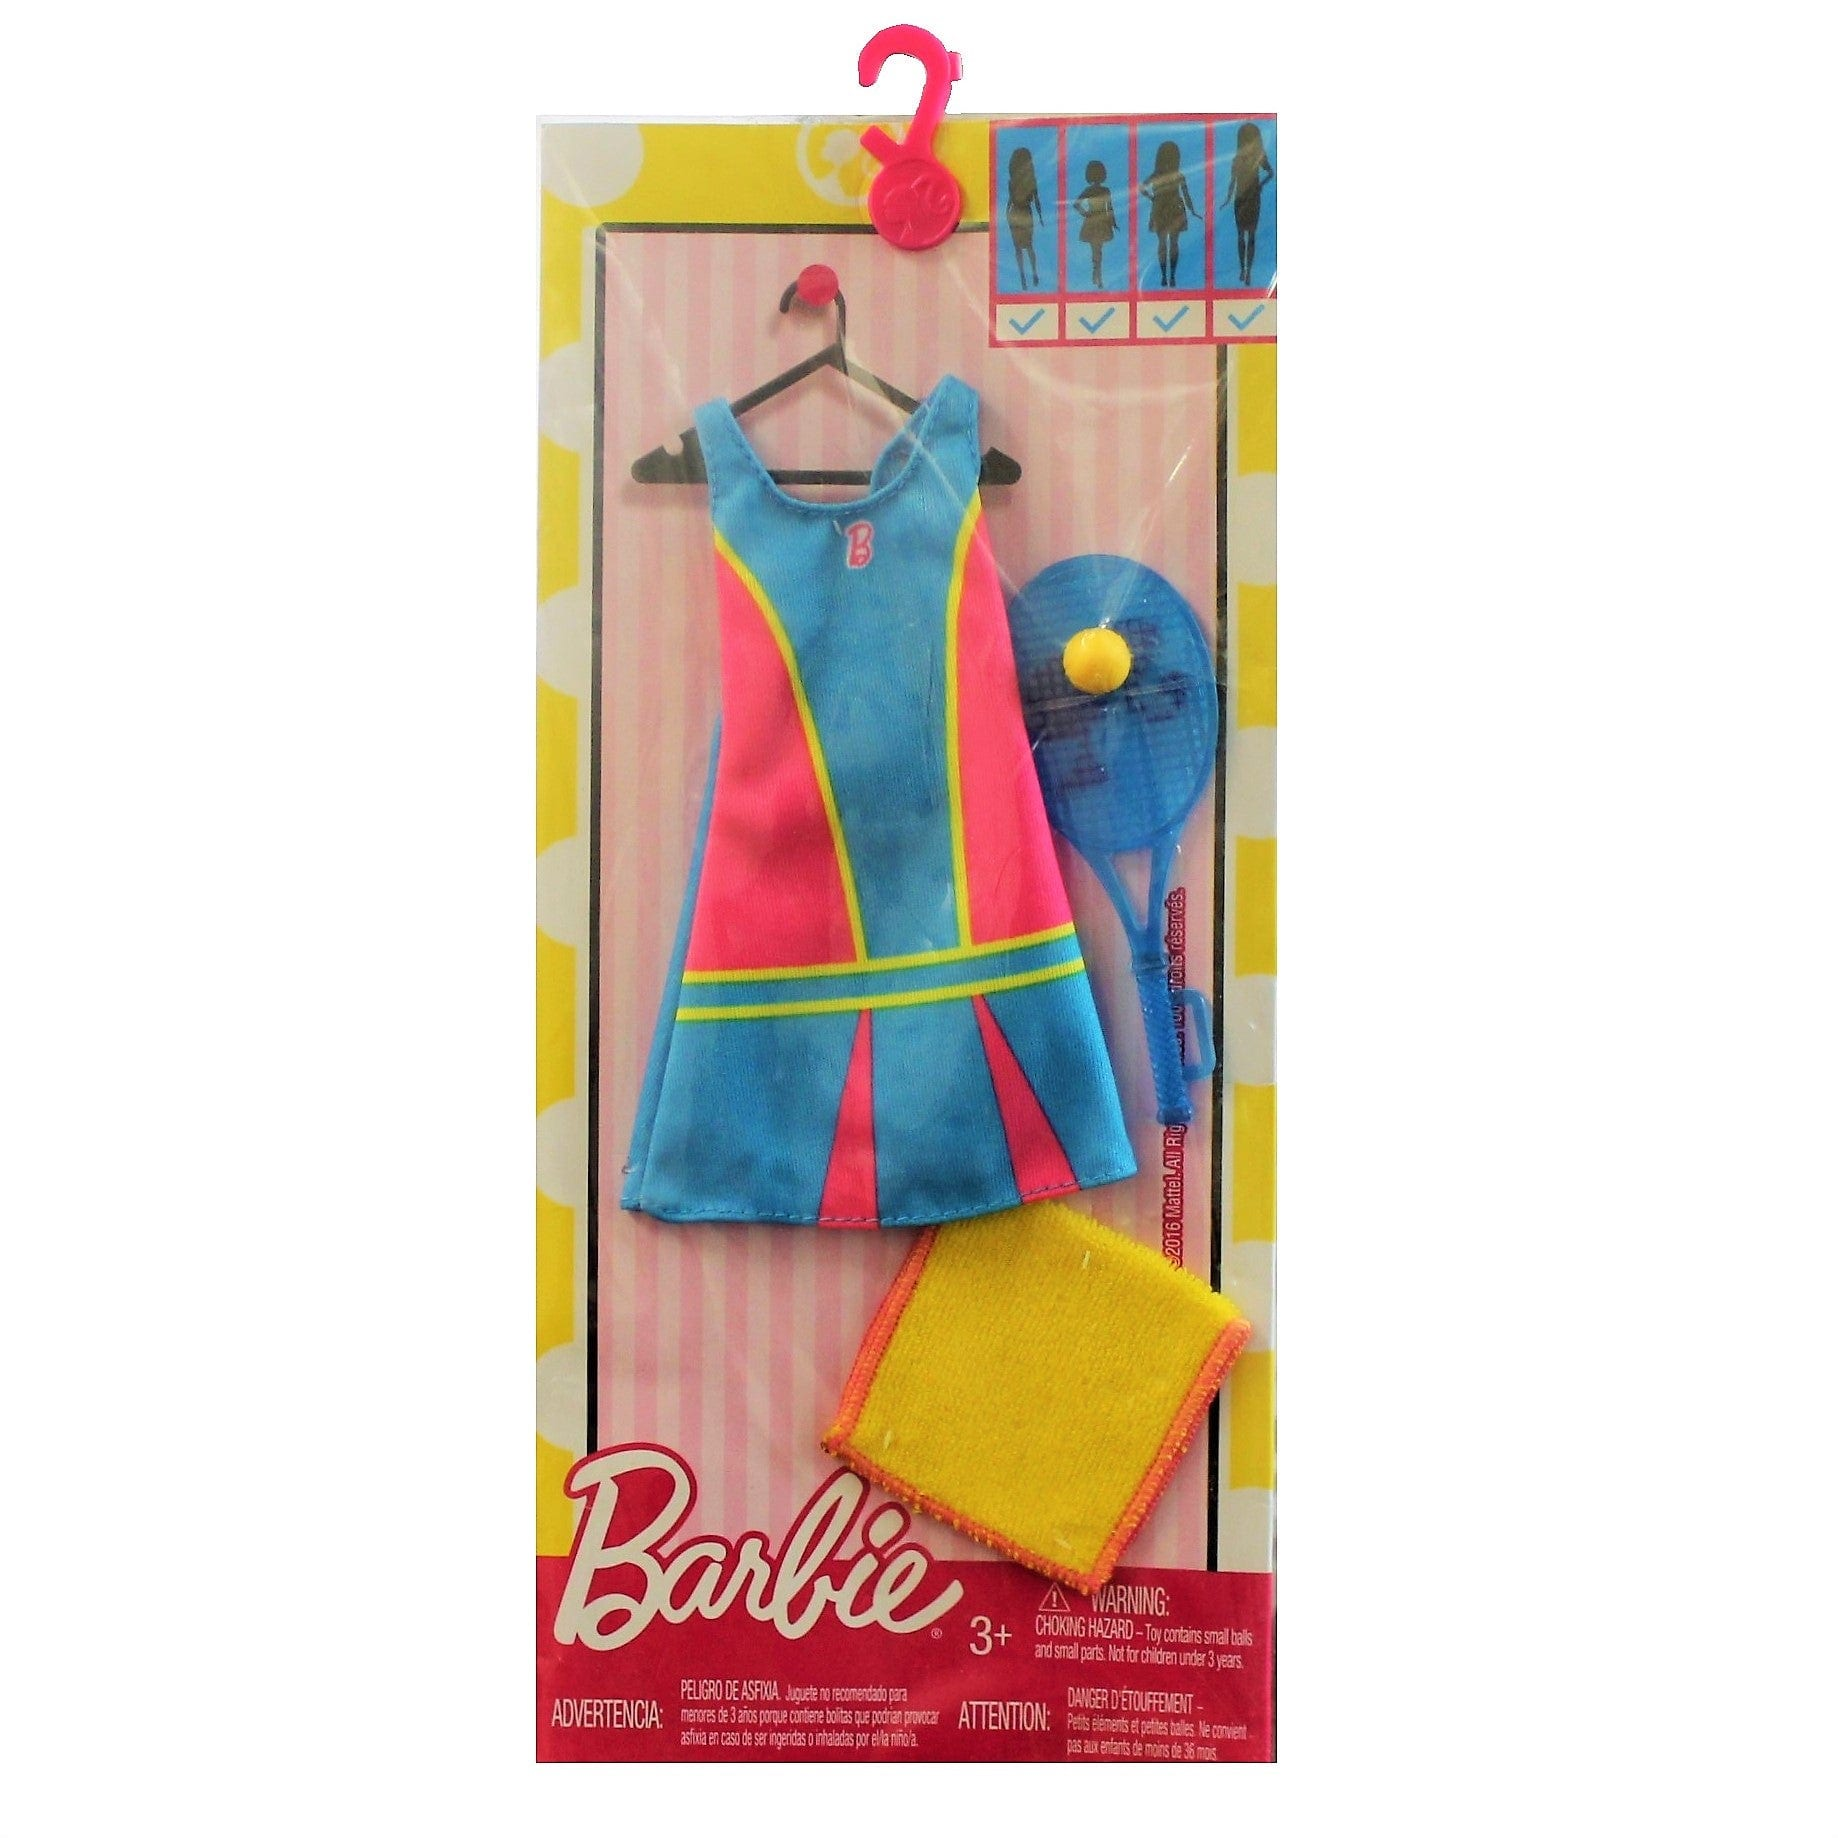 Barbie Fashions - Tennis Time Doll Outfit with Tennis Racket